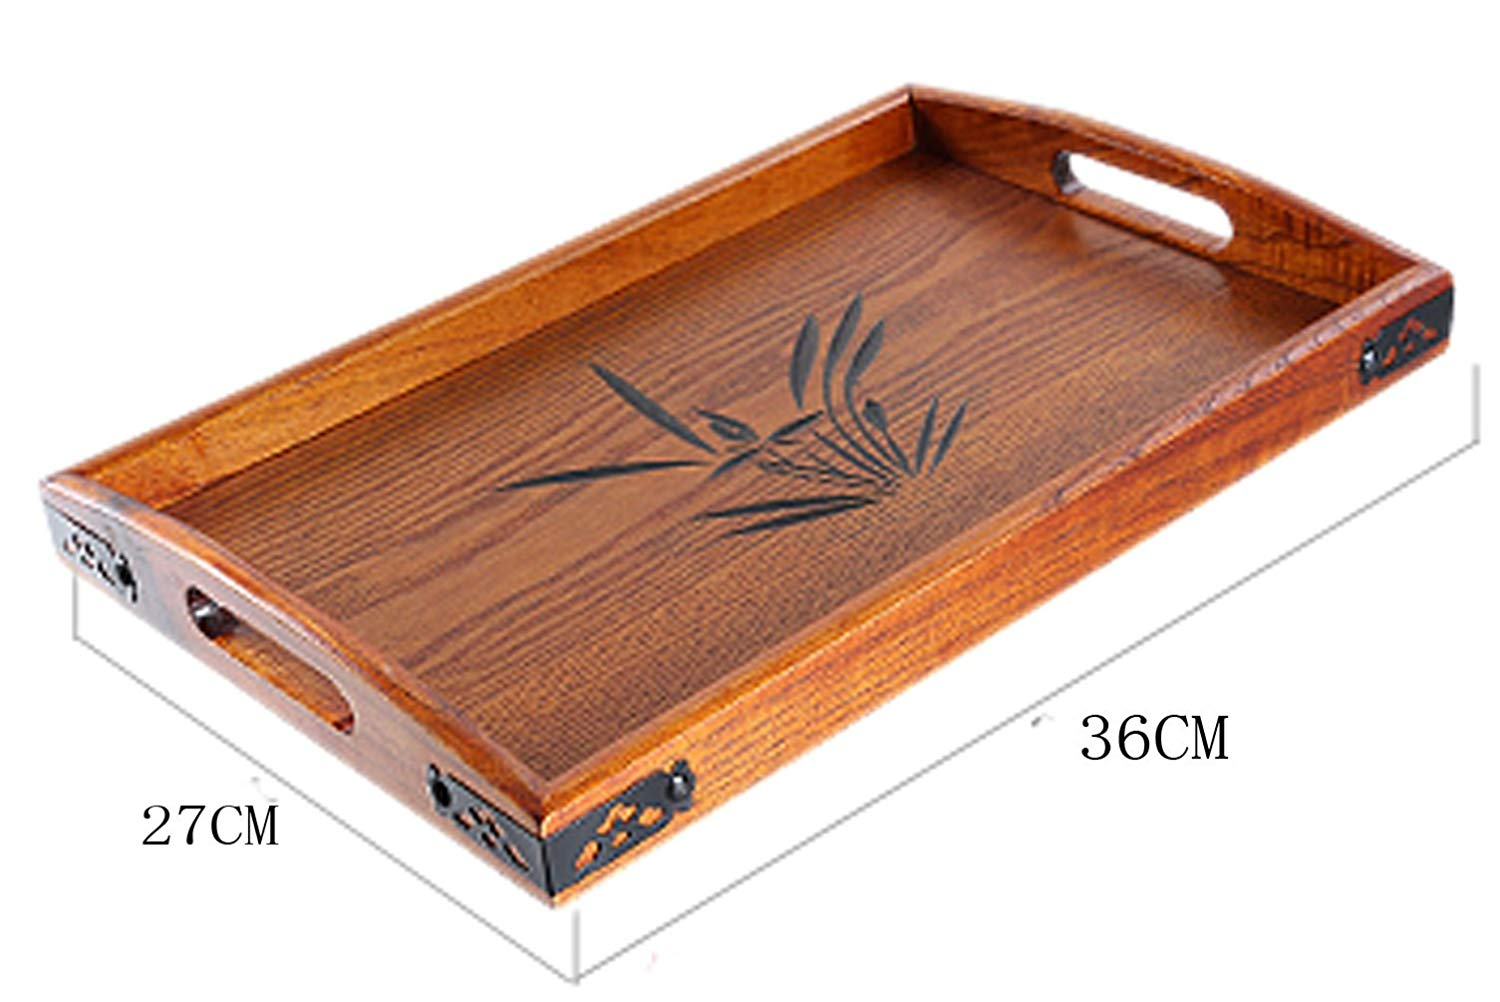 Buy Bandtie Solid Wood Serving Tray Wooden Tray For Tea Coffee Wine Food Used As Rectangular Wooden Platter Decorative Tray Breakfast Tray Party Platter Nesting Kitchen And Dining With Handles Small Size In Cheap Price On Alibaba Com